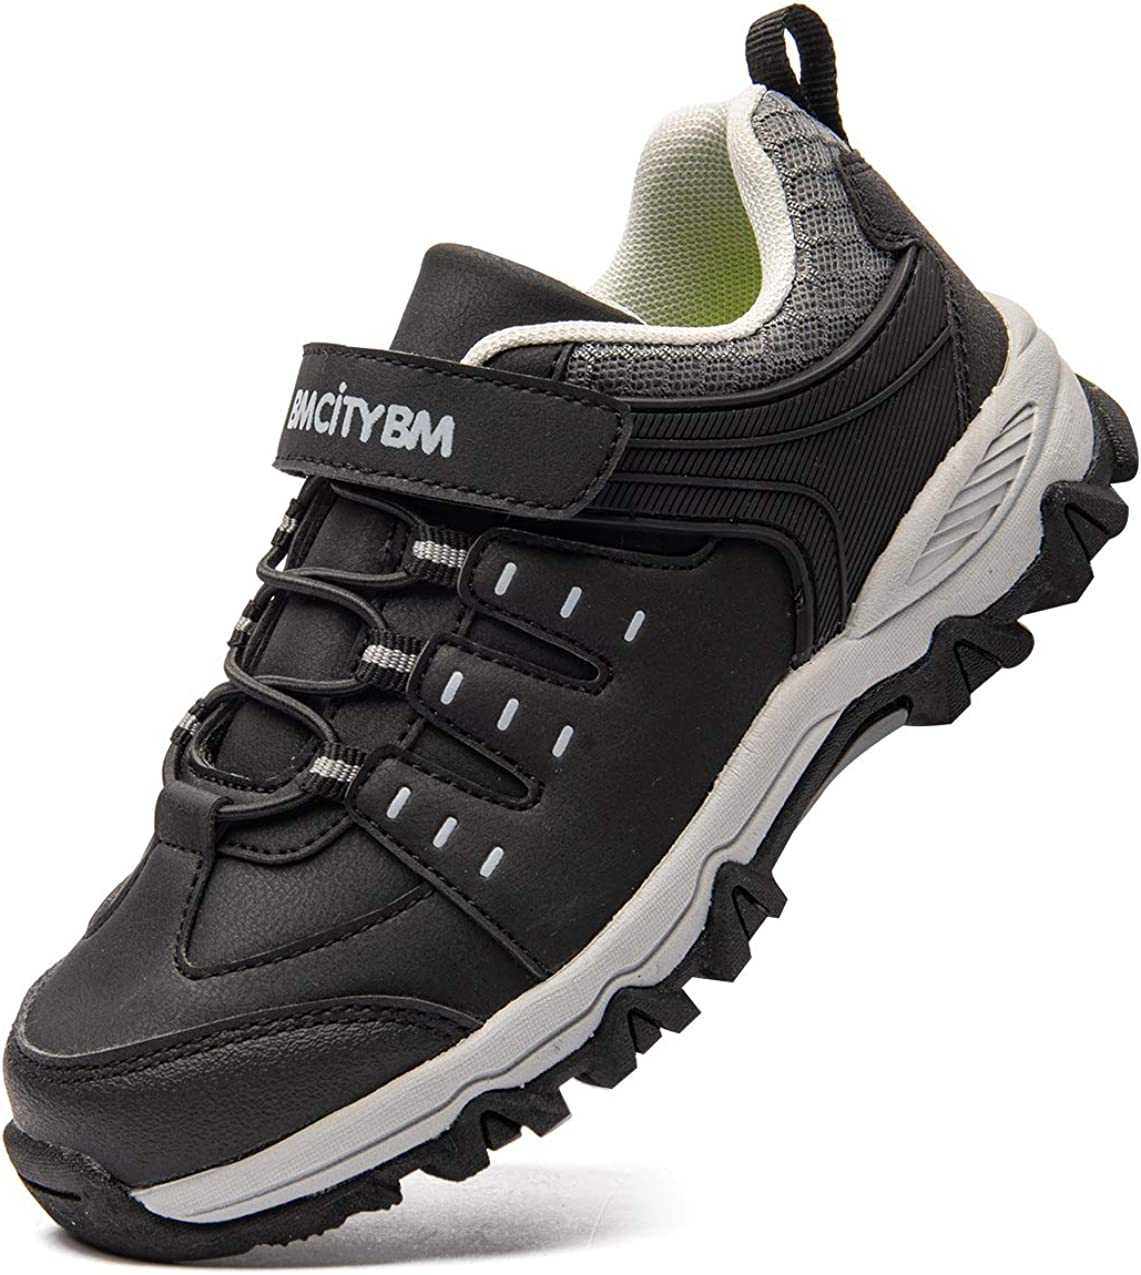 Amazon.com   BMCiTYBM Toddler Sneakers Boys Kids Waterproof Hiking Tennis  Athletic Running Shoes Outdoor   Hiking Shoes